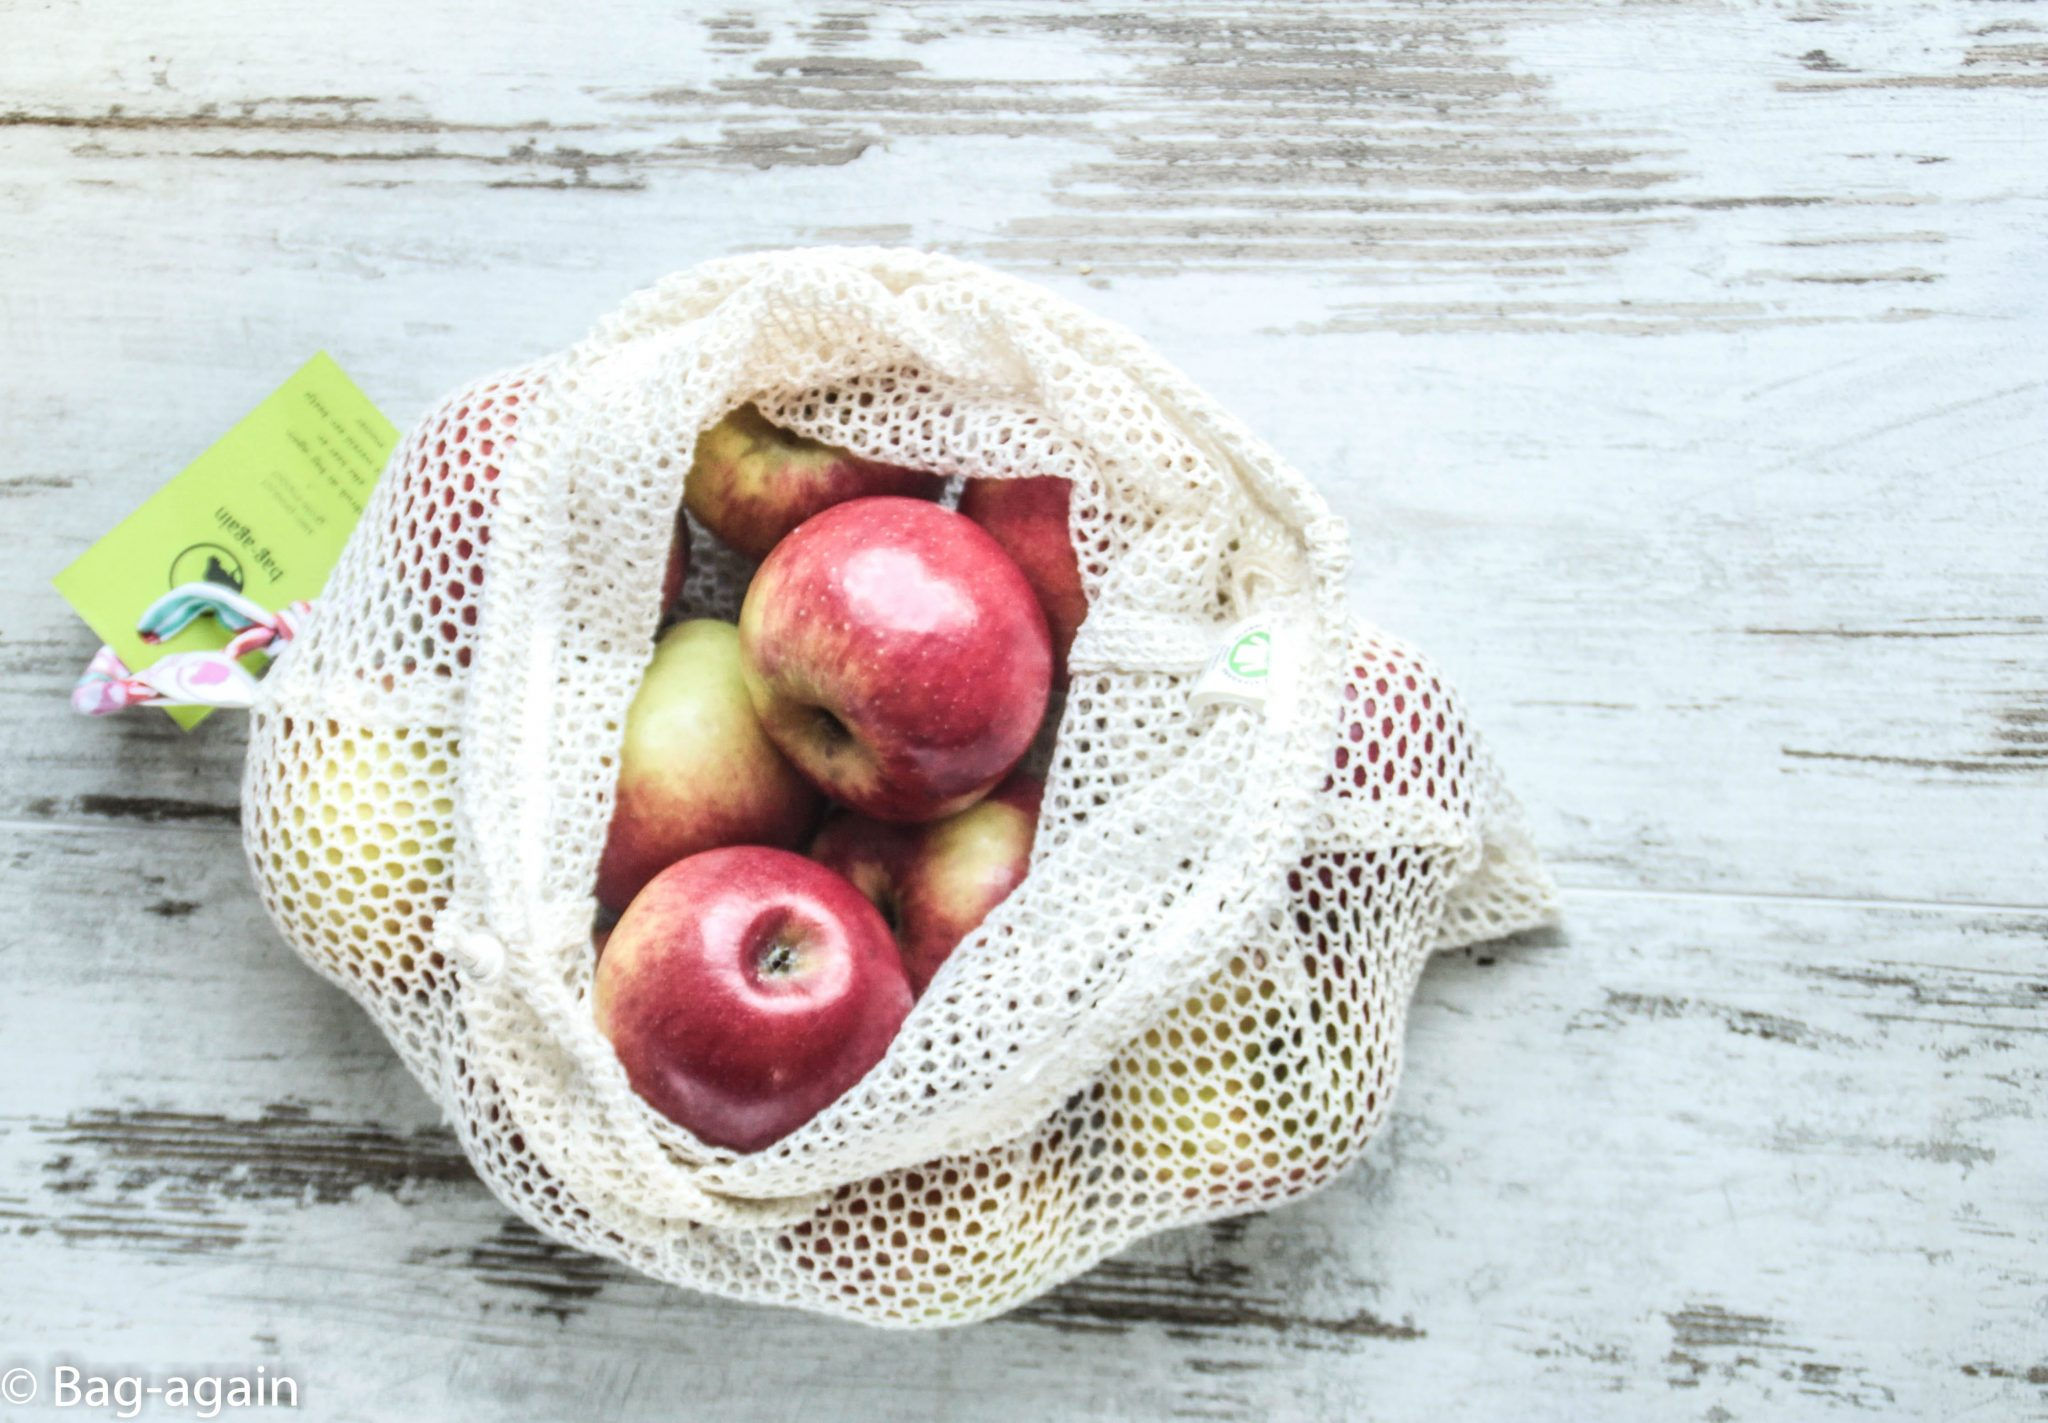 fruit&vegetable bag L, bag-again, zero waste, zero waste shop, zero waste webshop, B2B, organic cotton, produce bag